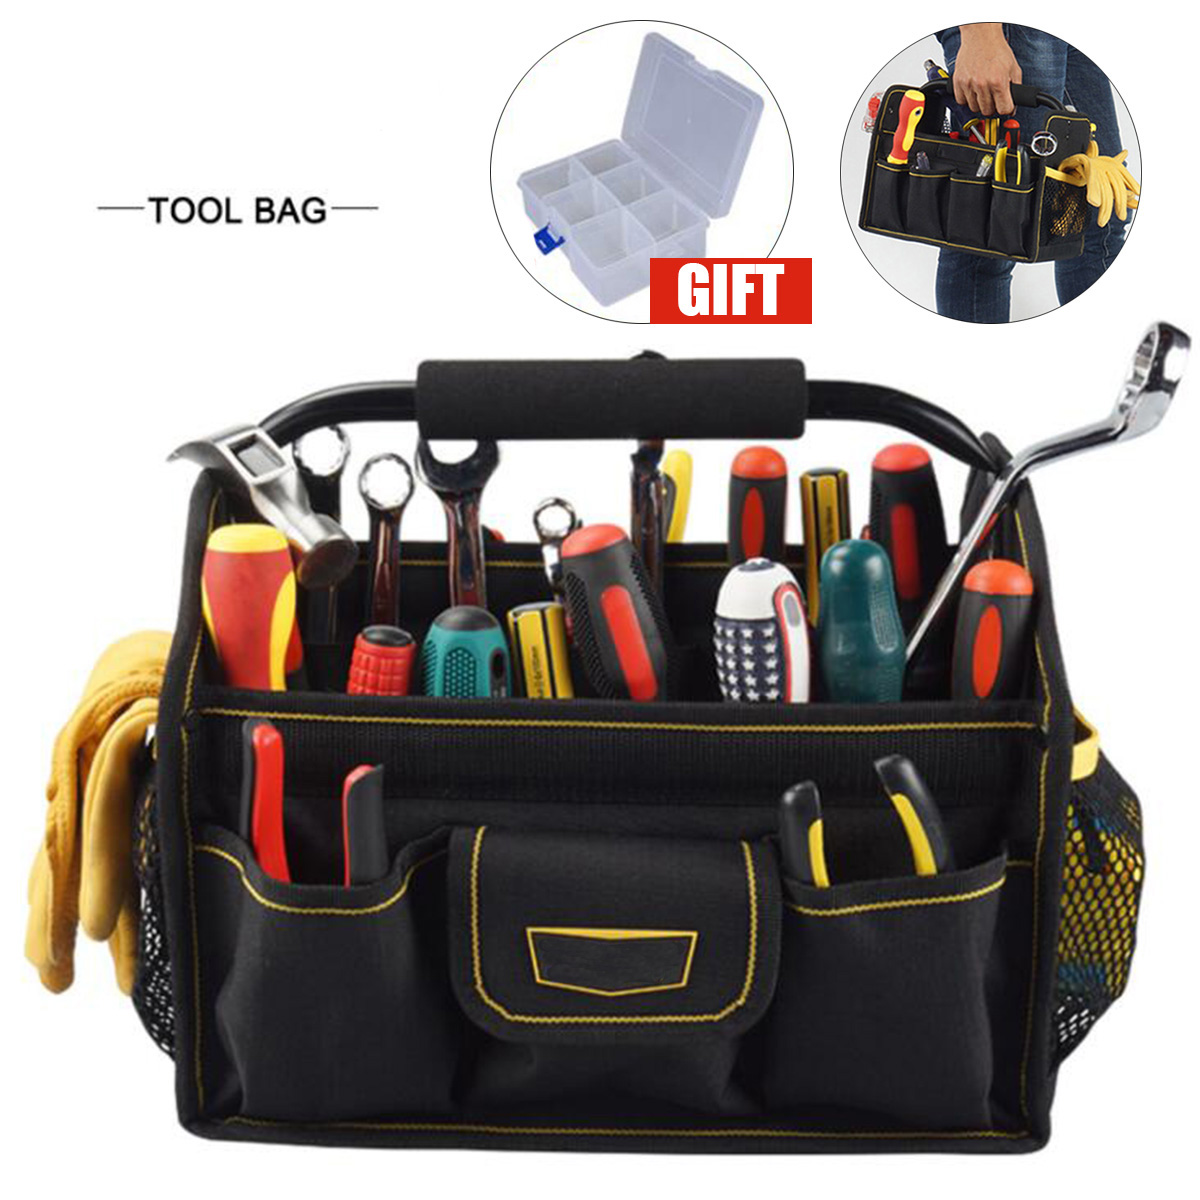 26 Pockets Wide Mouth Oxford Cloth Electrician Tool Bag Thicken Hardware Professional Electrician Repair Storage Work Bag Holder 1 pcs tool kit pack hardware repair kit tool bag electrician work multifunction durable mechanics oxford cloth bag organizer bag